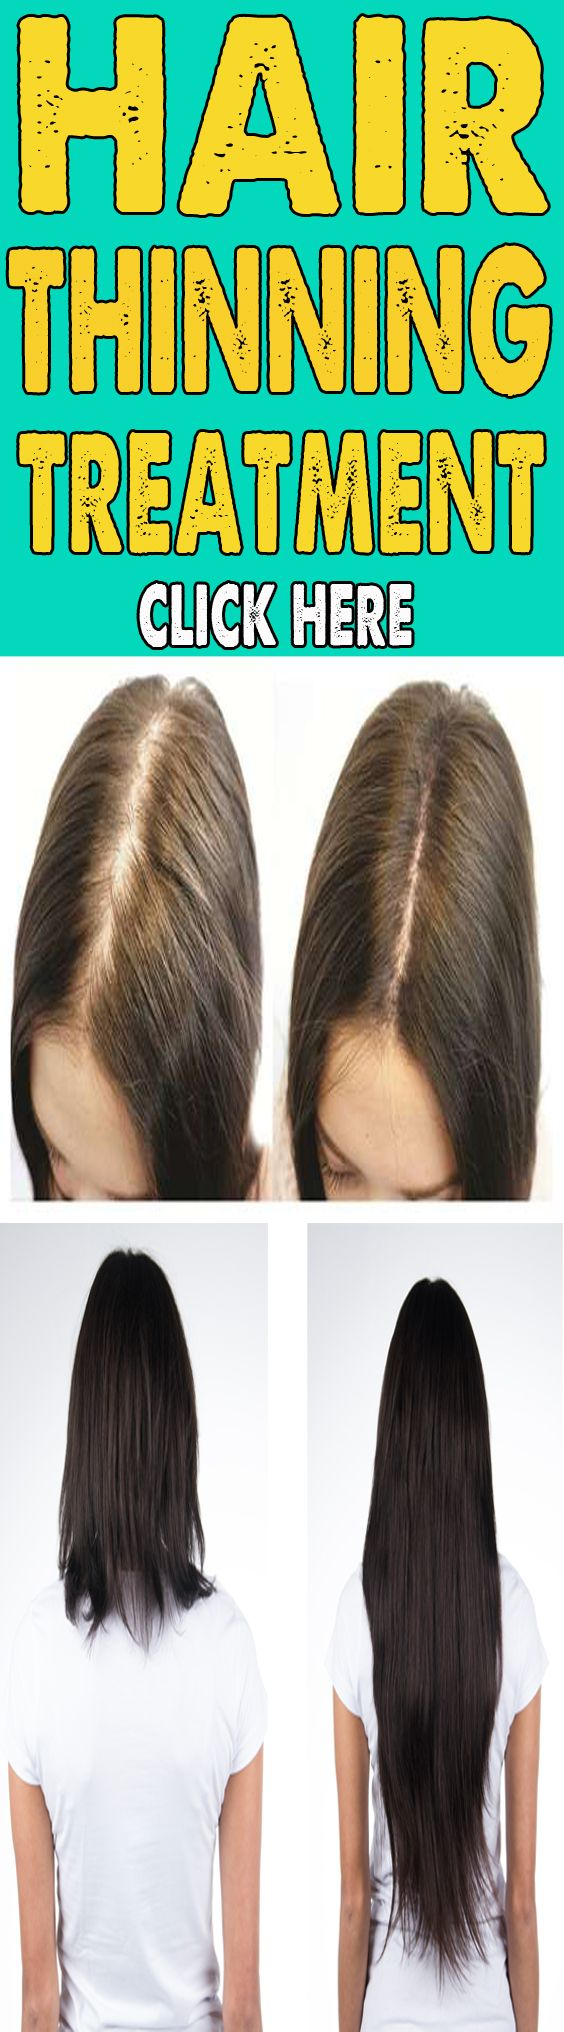 how to stop hair fall quickly